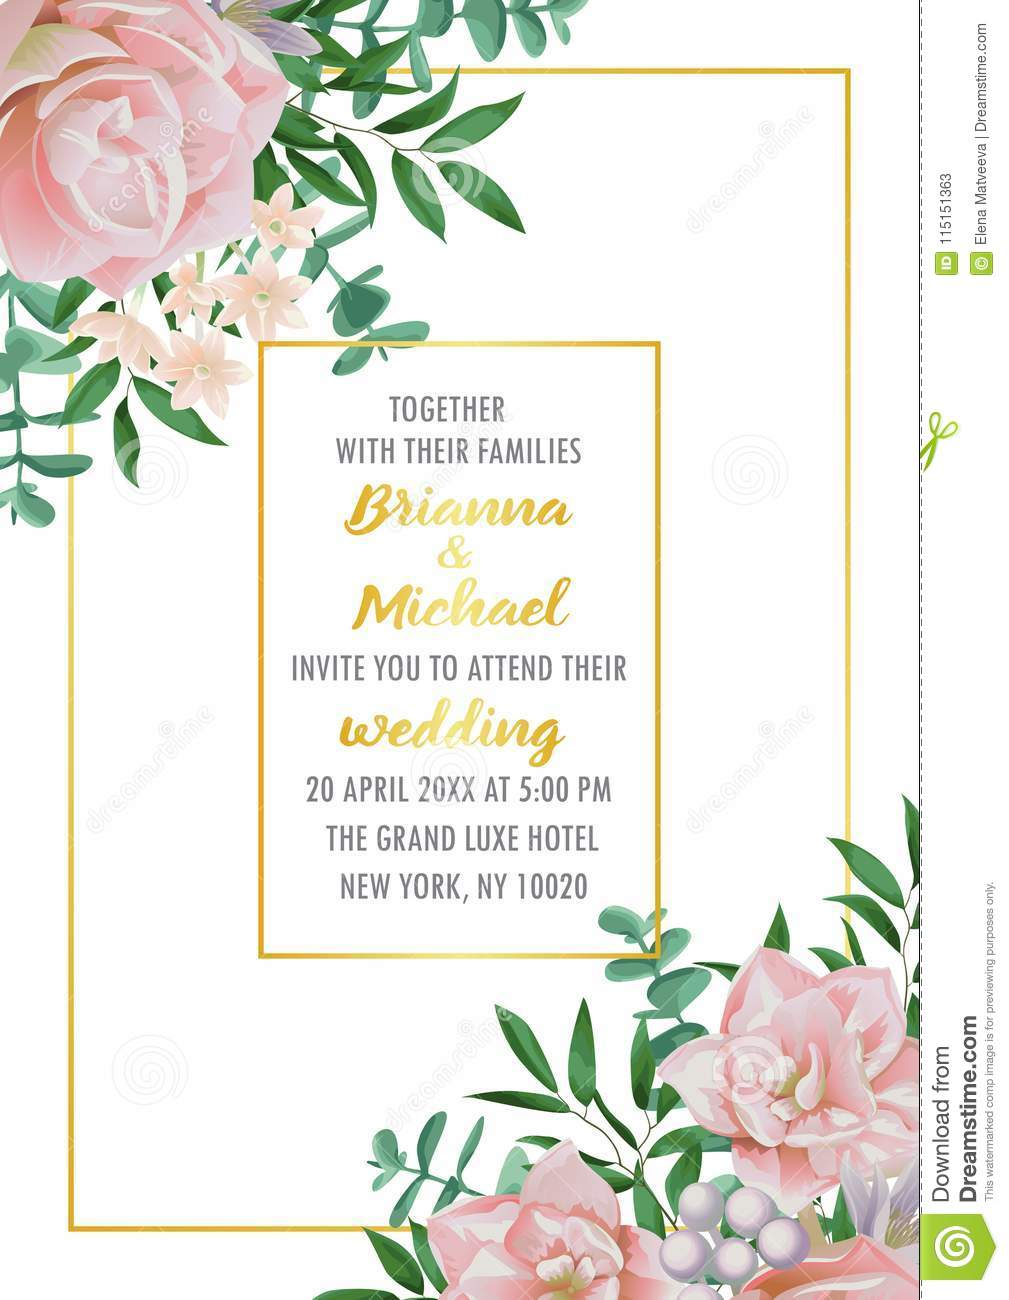 https www dreamstime com floral wedding invitation flowers herb bushes branches watercolor style white background greenery botanical image115151363